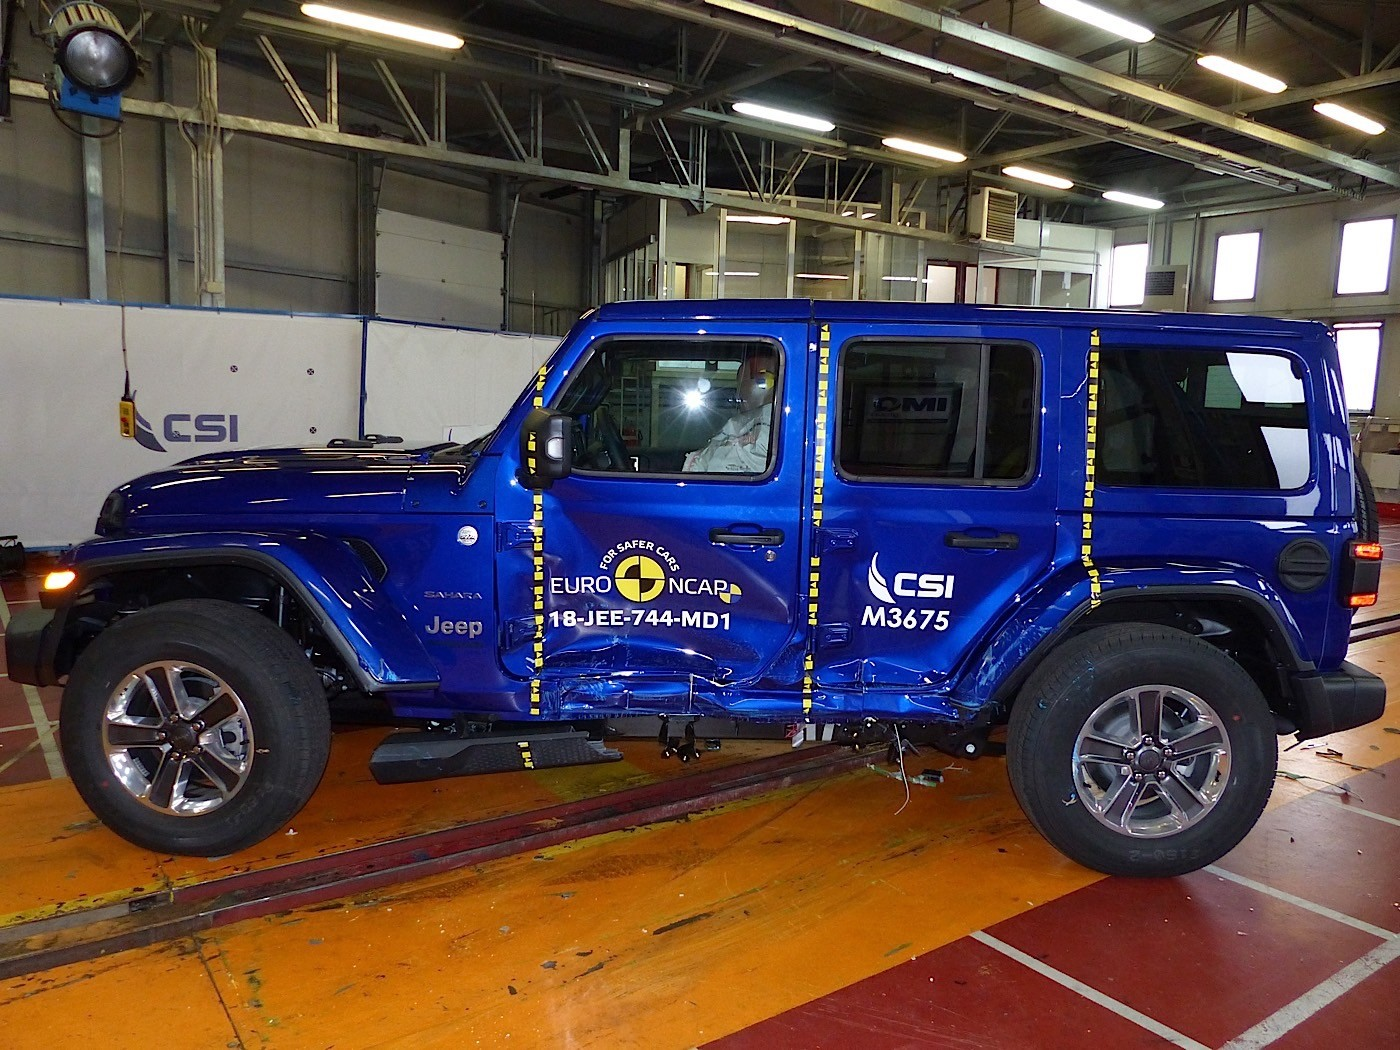 Jeep Wrangler gets bad 1-star NCAP safety rating